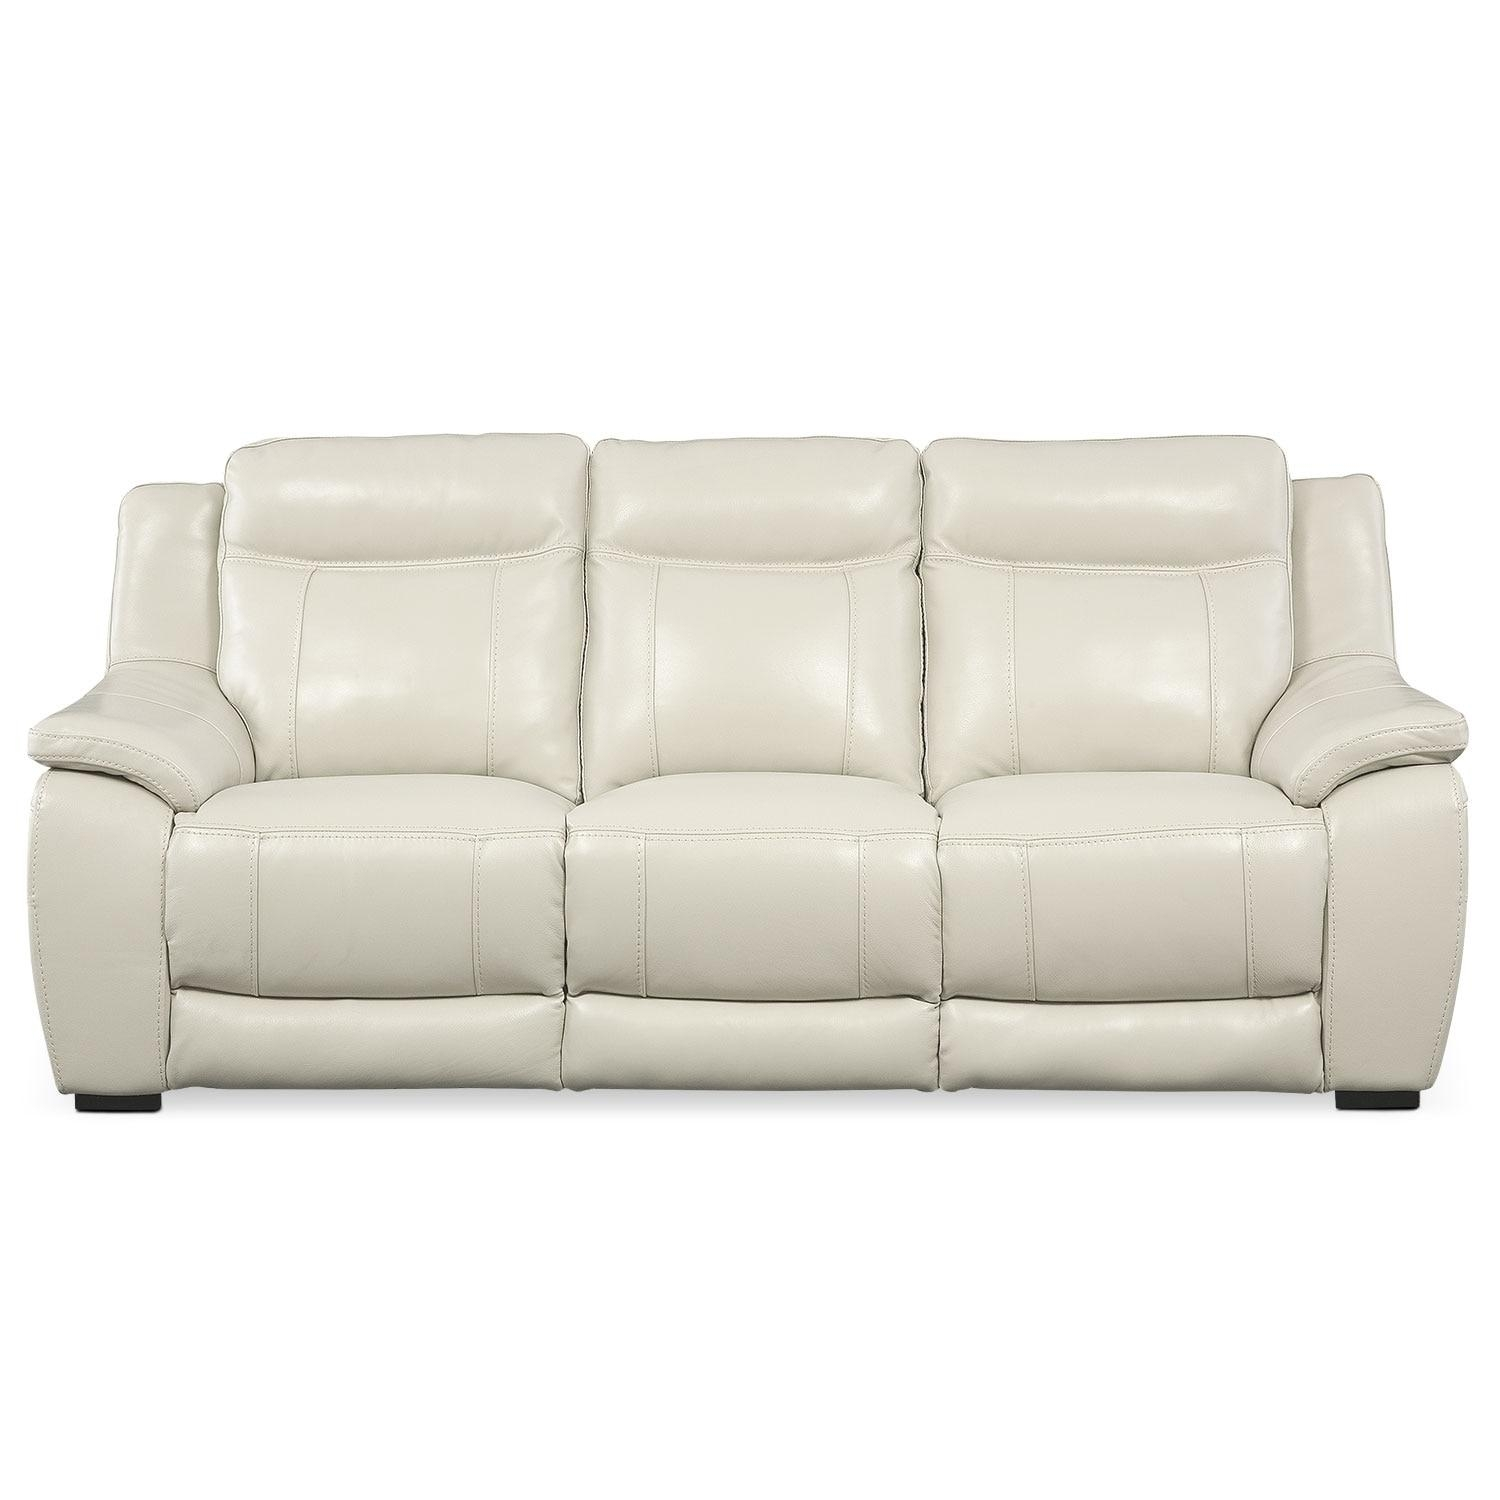 Lido Sofa – Ivory | Value City Furniture Inside Ivory Leather Sofas (View 8 of 20)